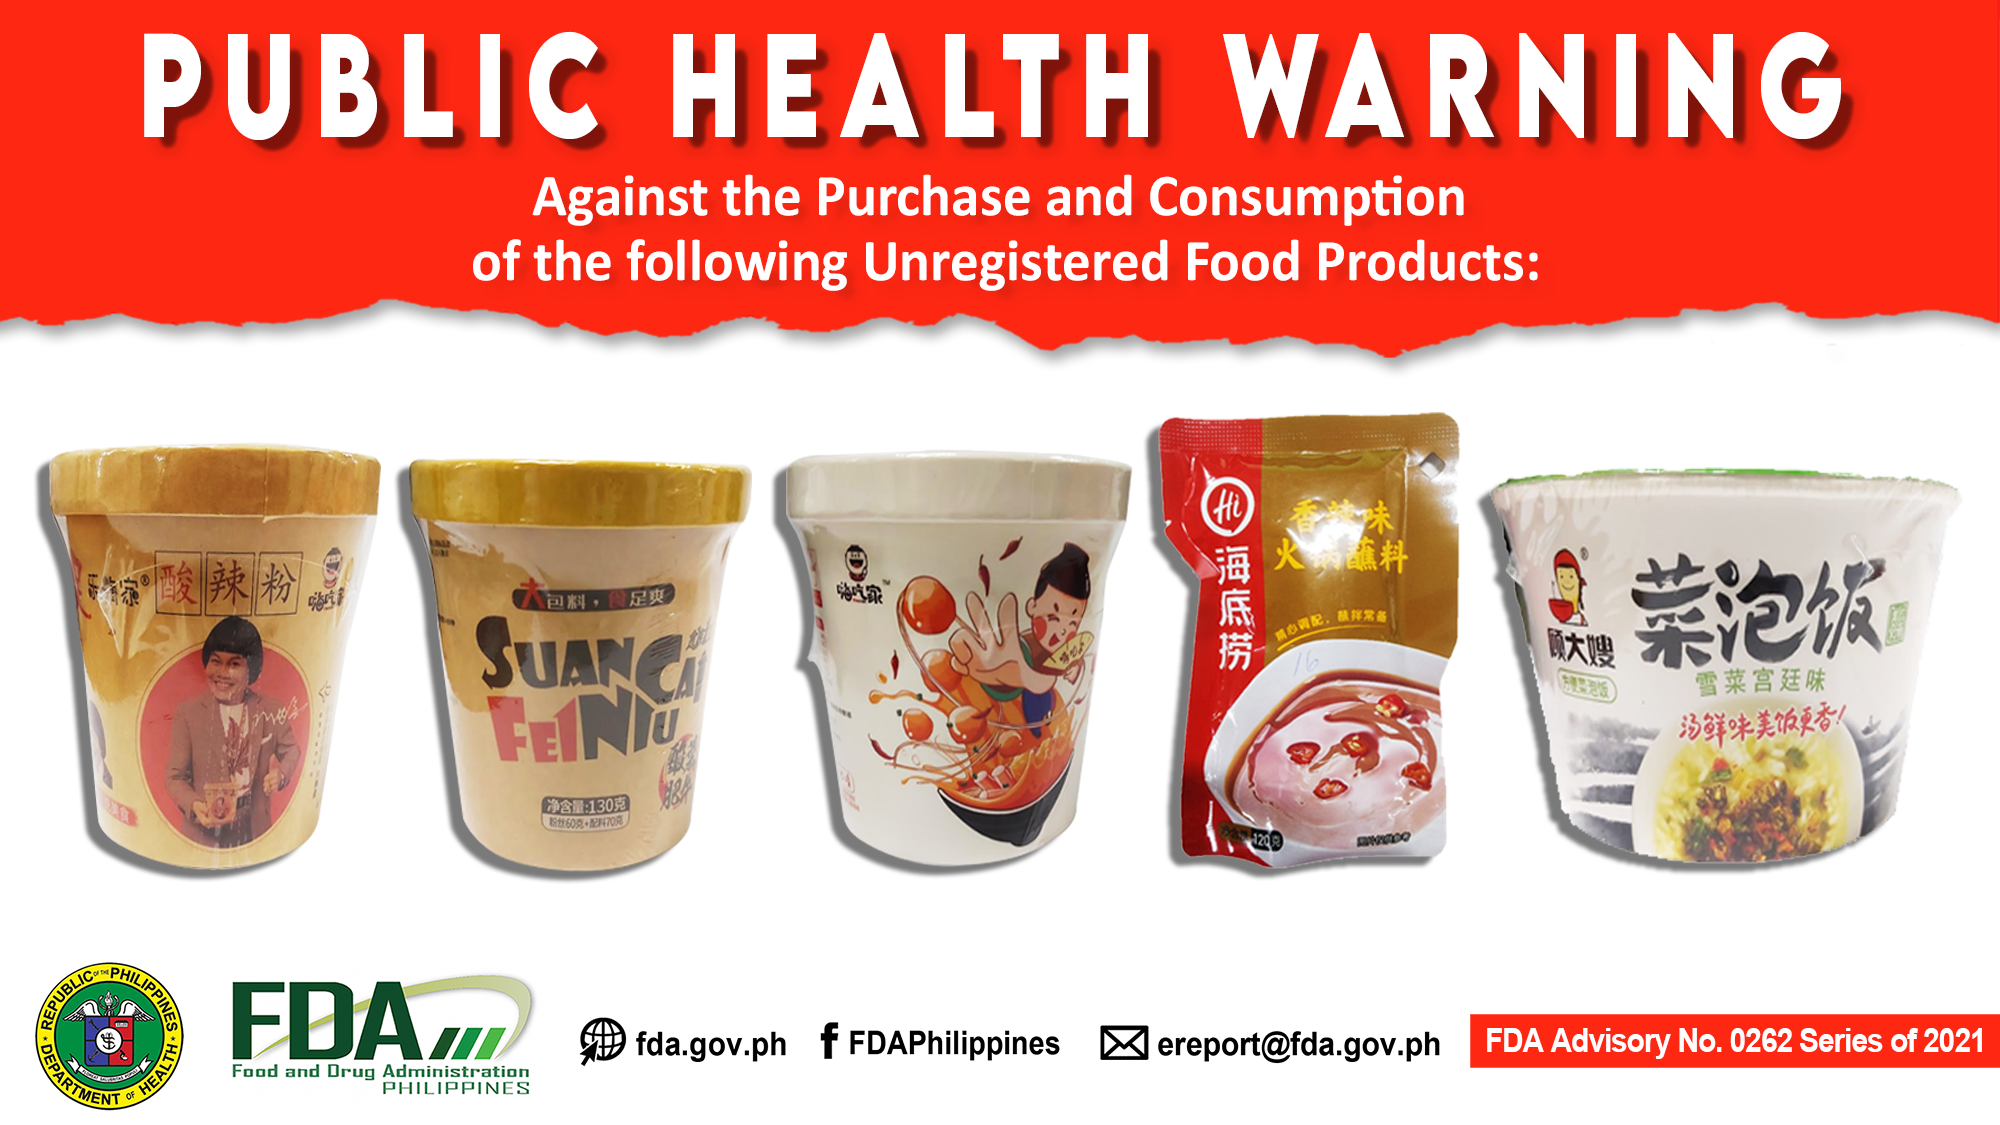 FDA Advisory No.2021-0262 || Public Health Warning Against the Purchase and Consumption of the following Unregistered Food Products: